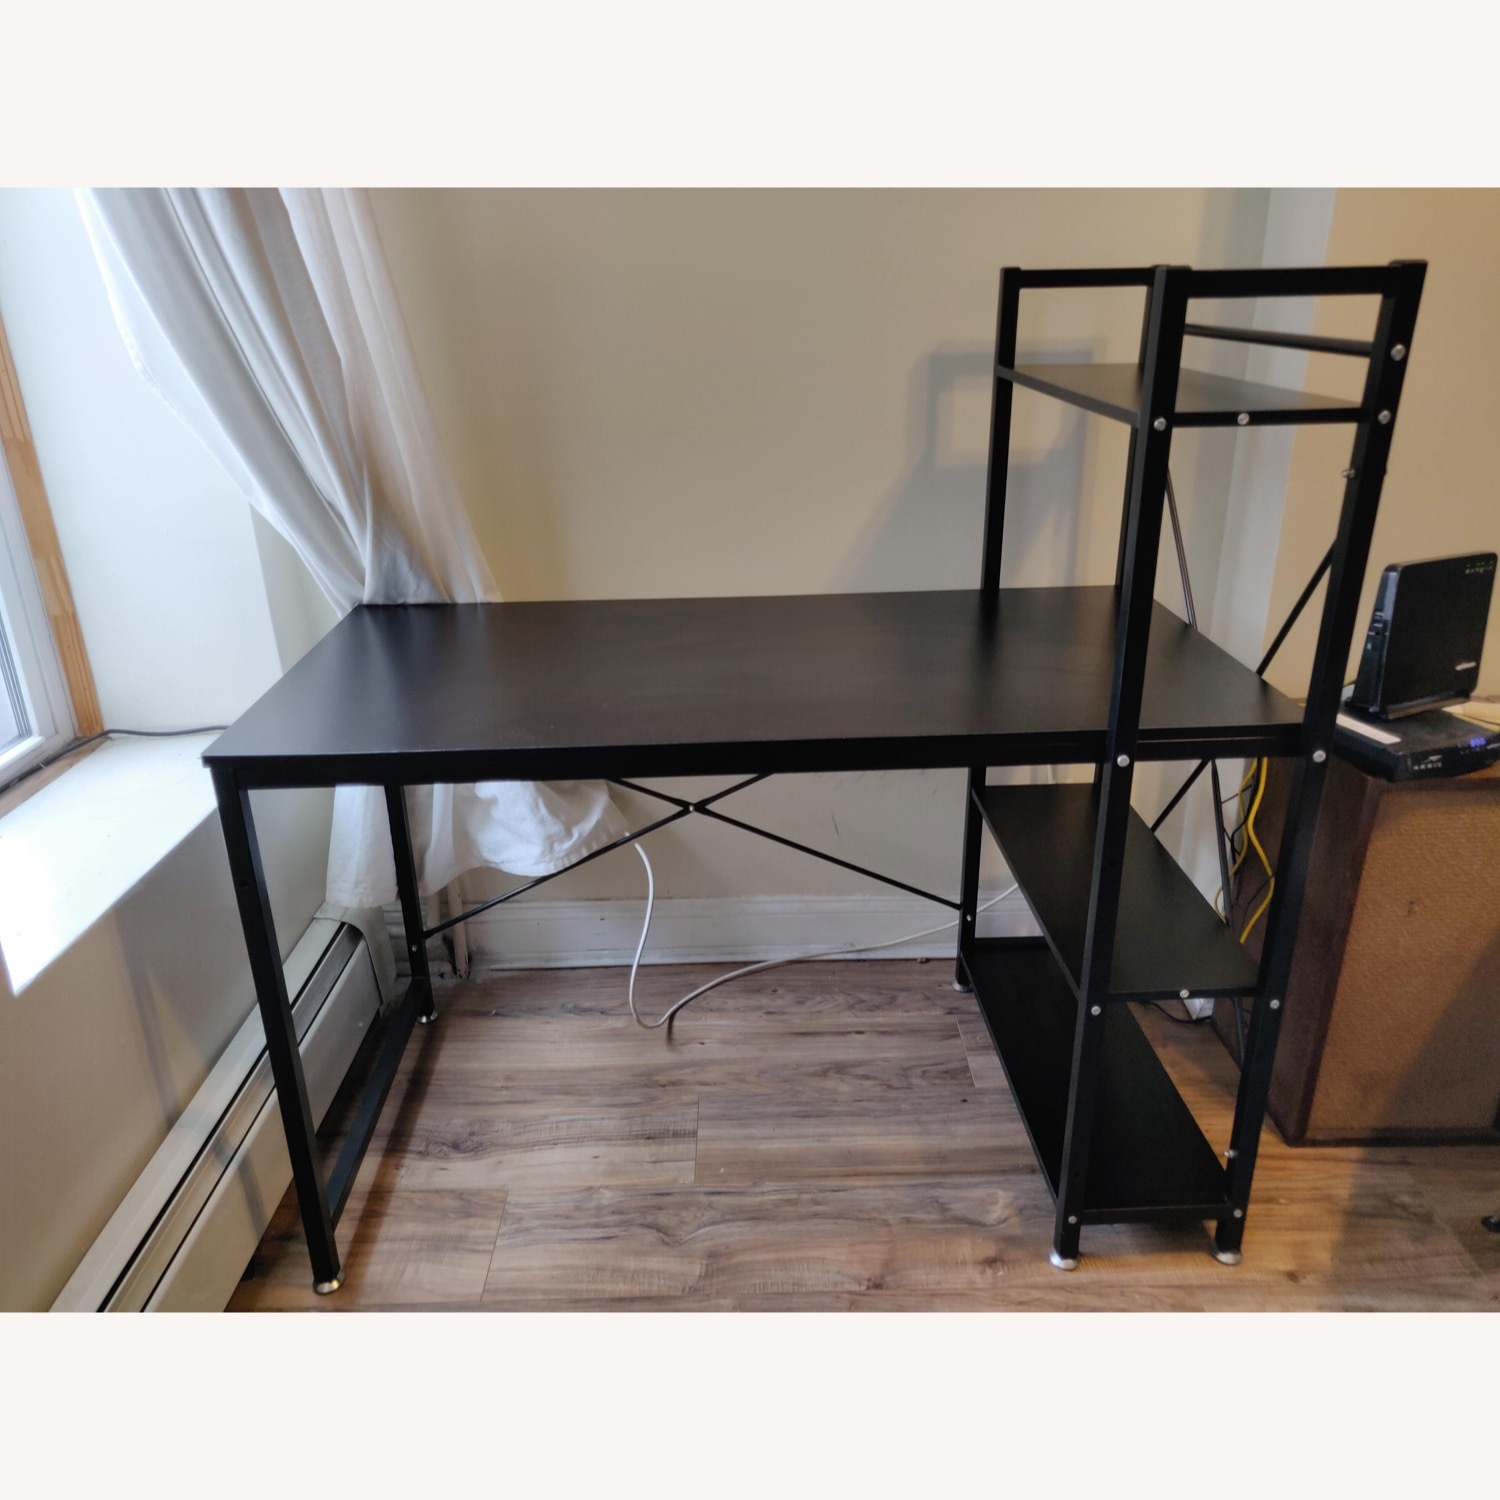 Industrial-style Desk with Shelves - image-1